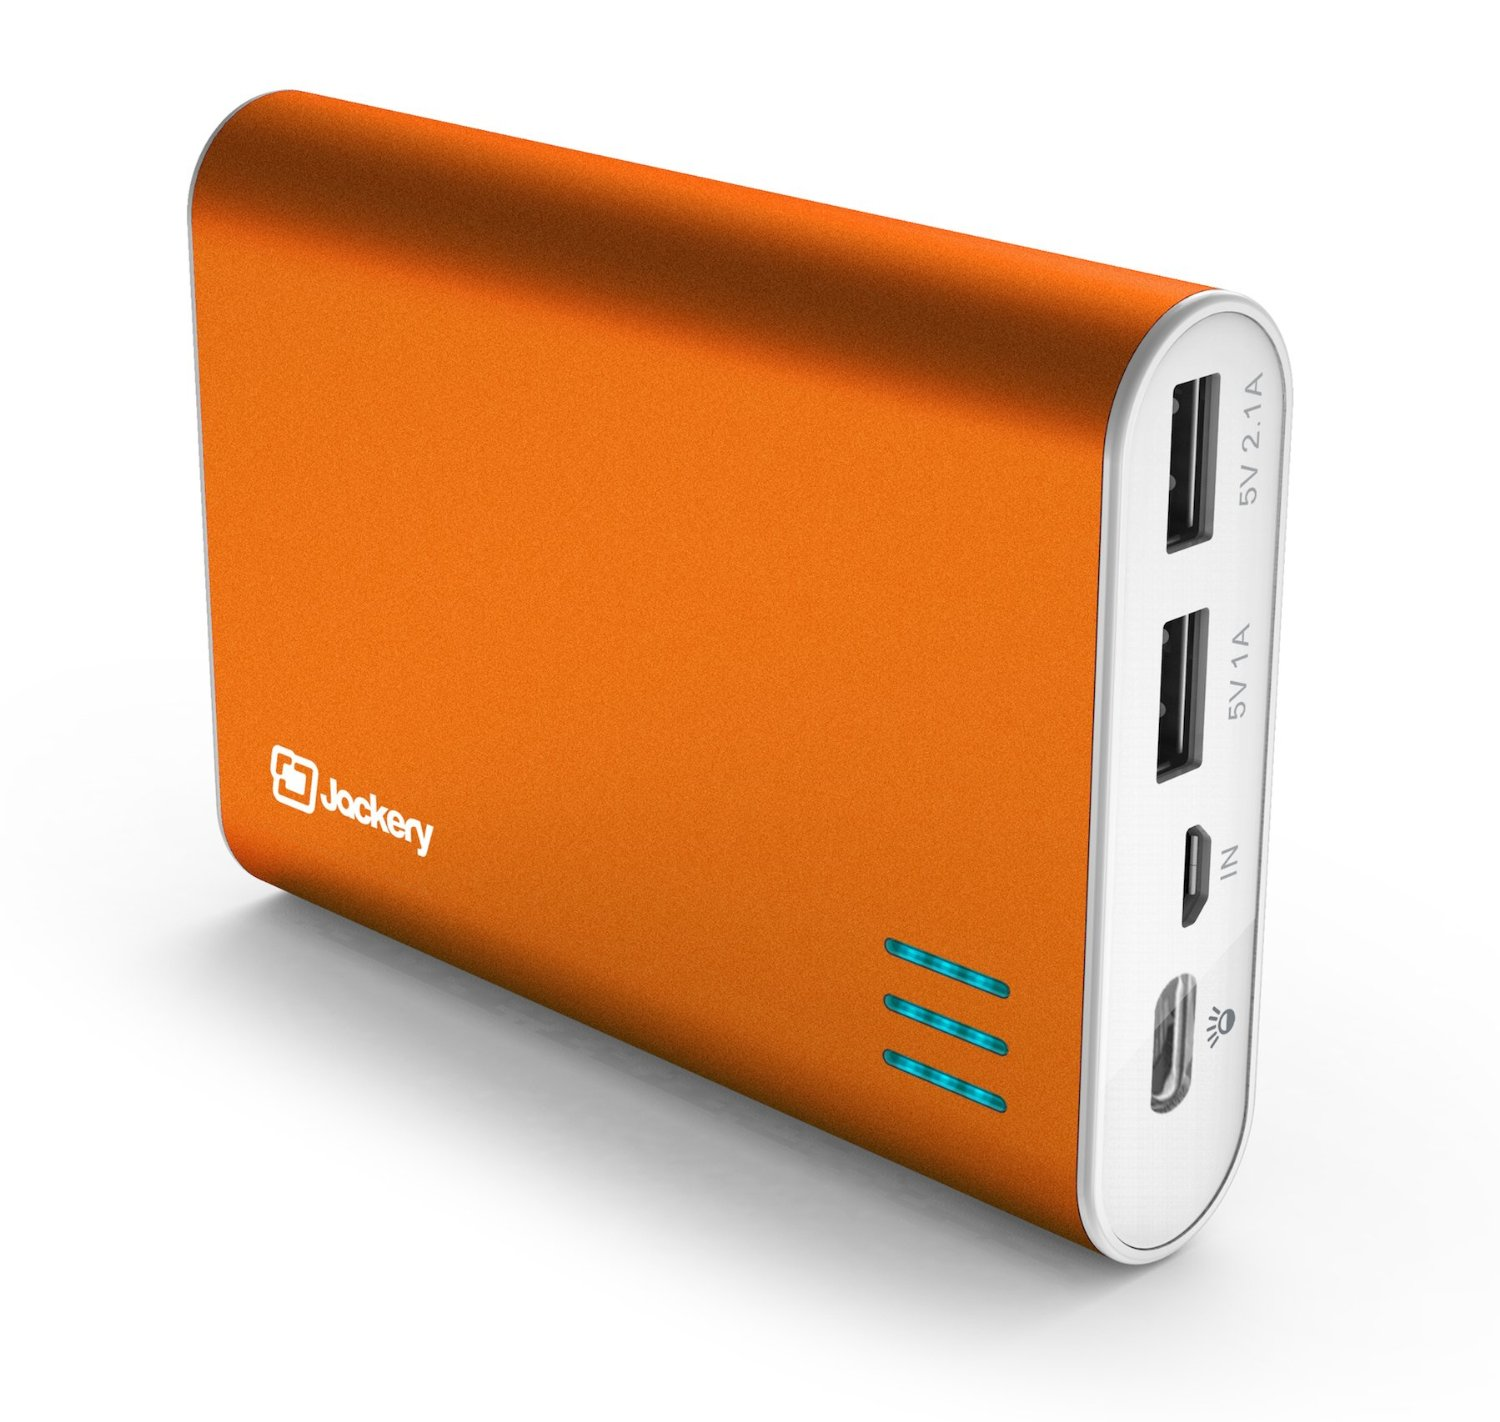 Jackery Giant 12 000 Mah Portable Charger Is 29 99 Today